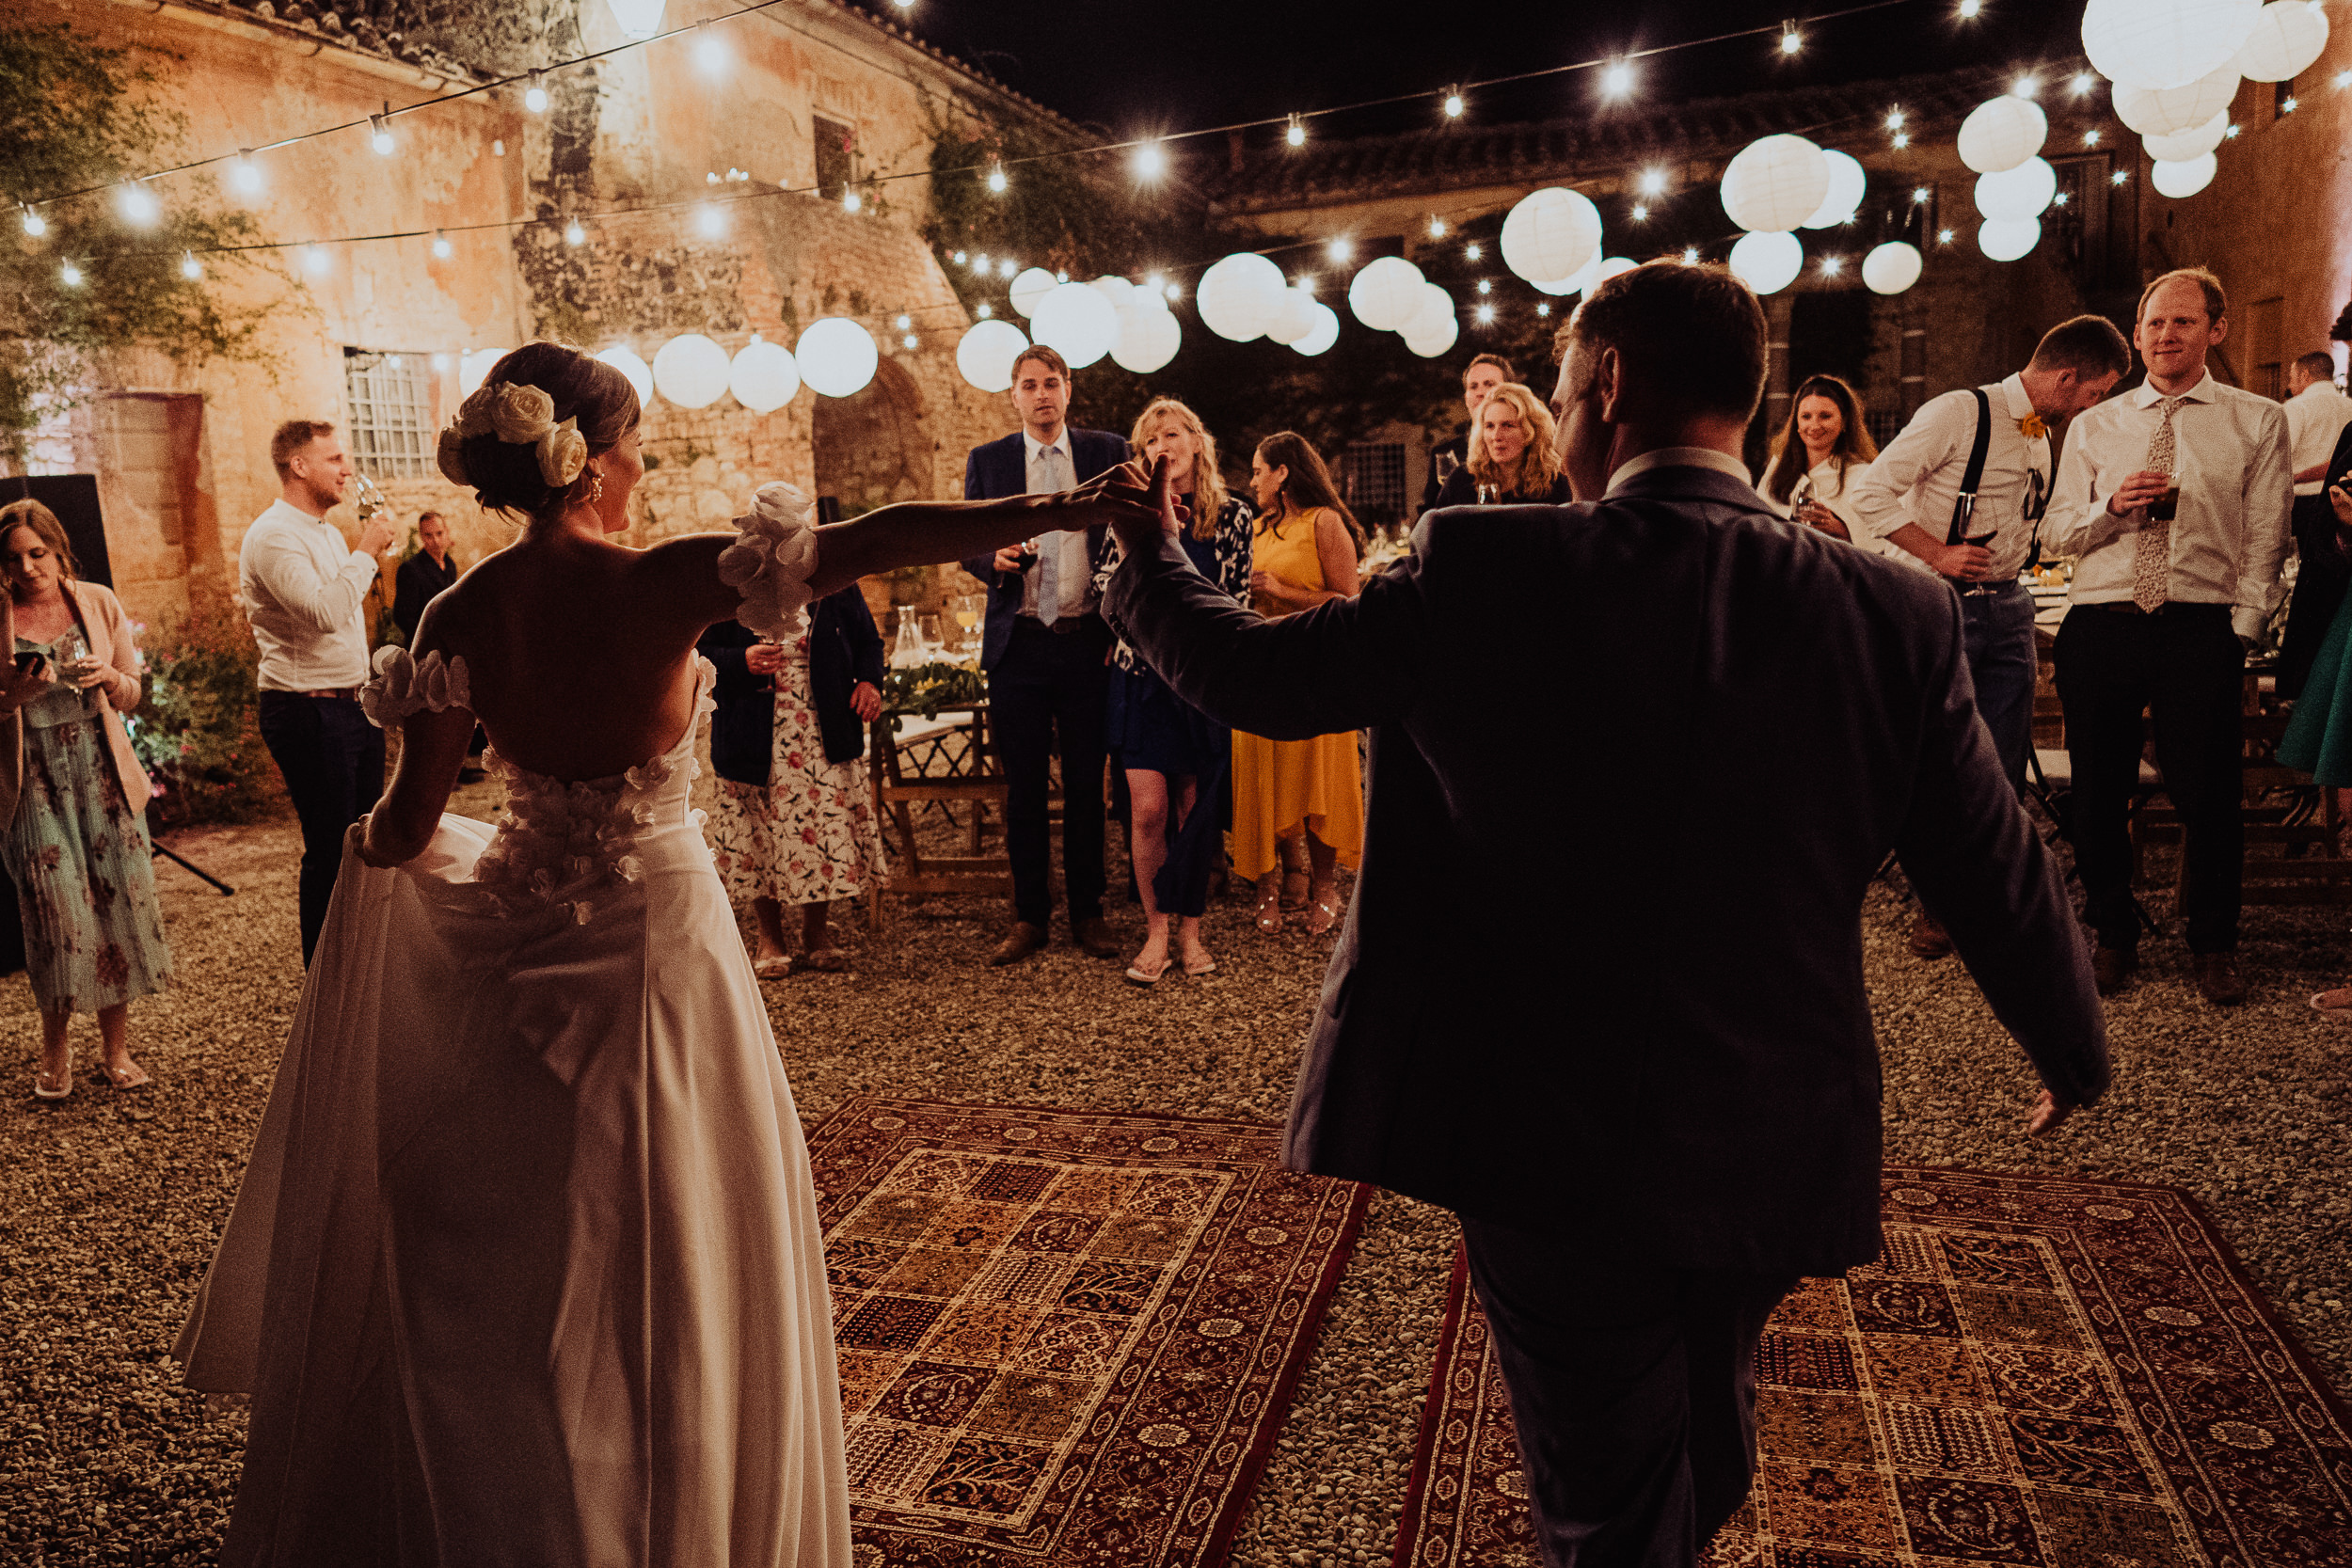 Tuscan Villa Wedding - The first dance